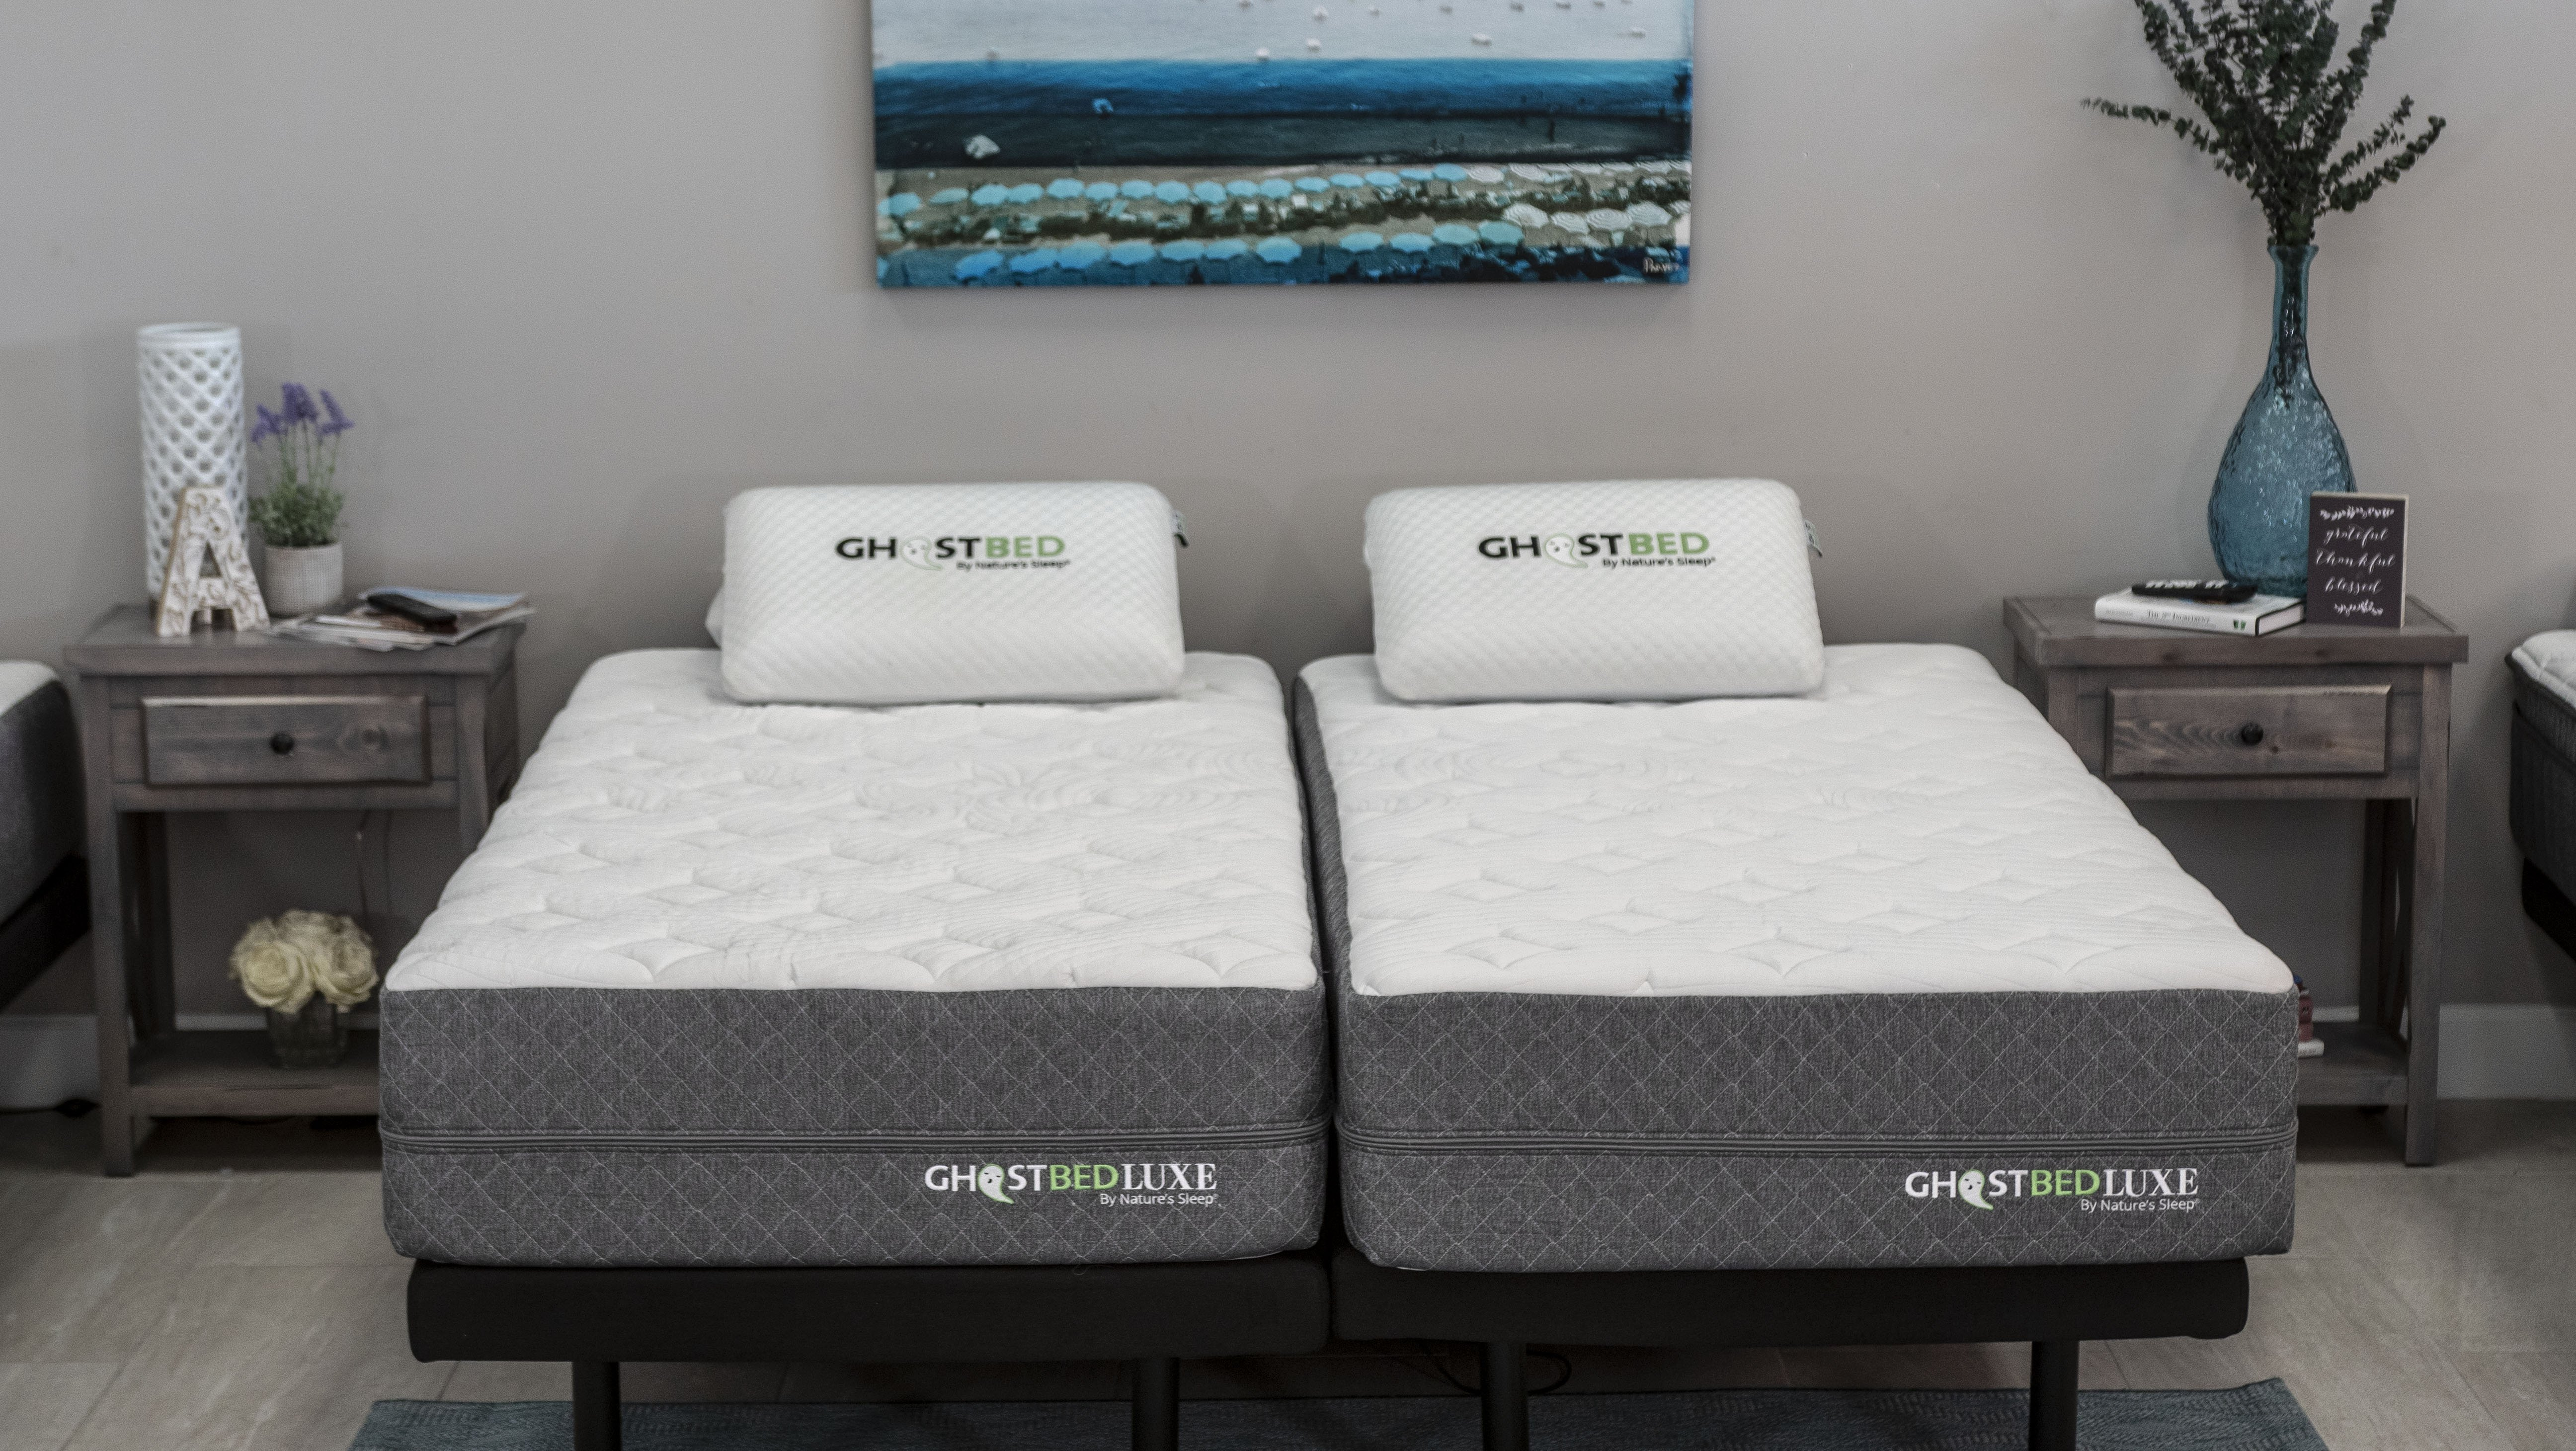 Guide Why Buy A Split King Mattress Bed Ghostbed